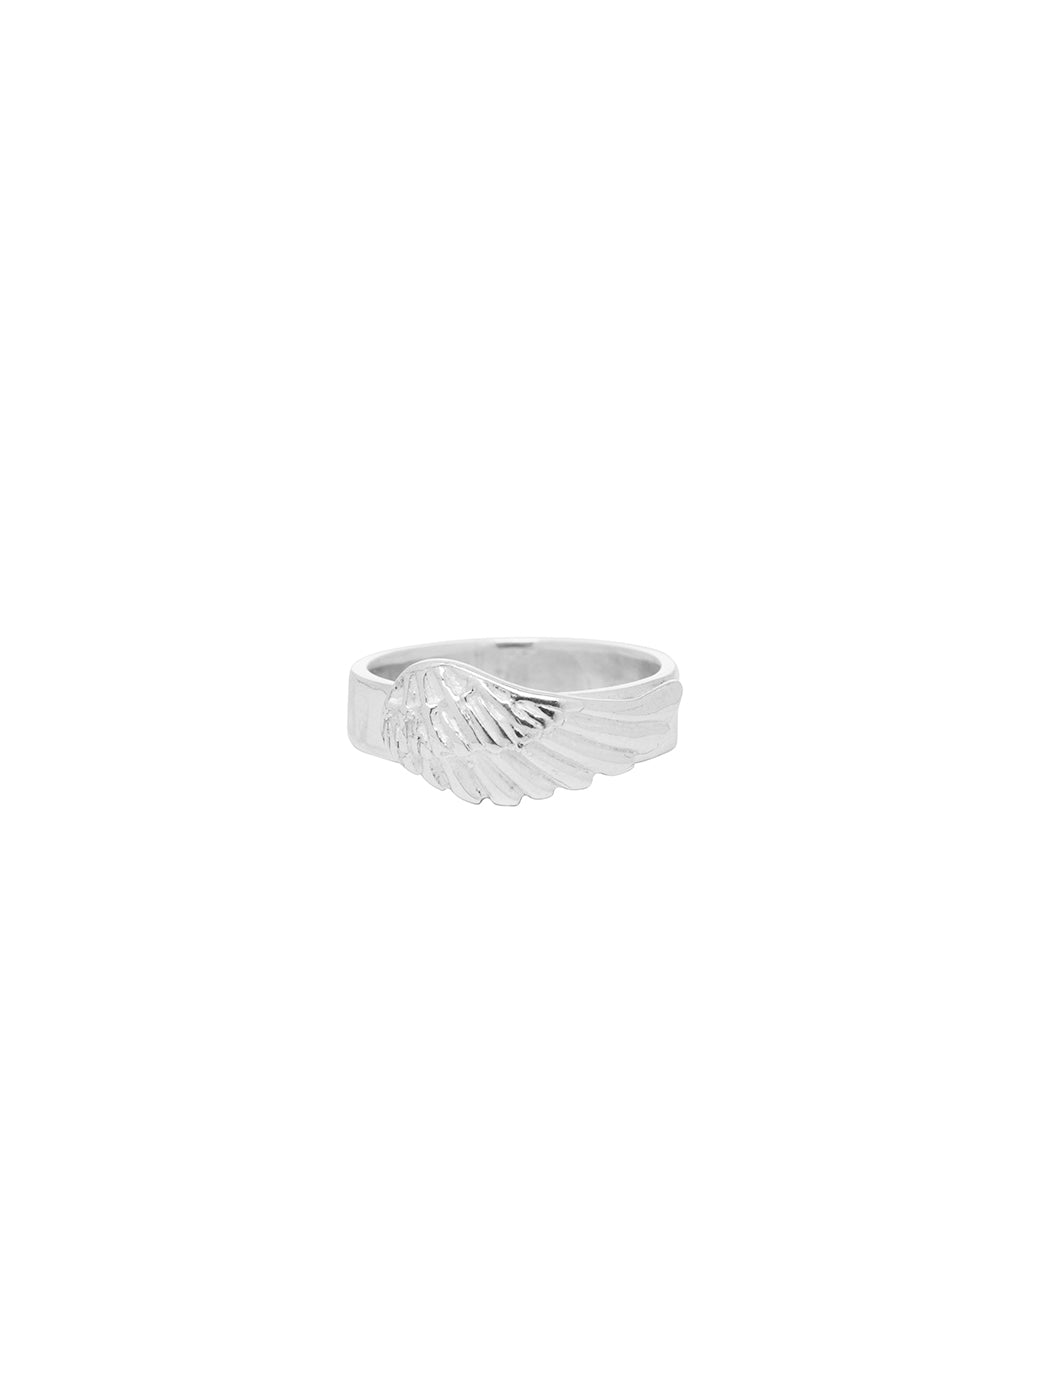 Fiorina Jewellery Tattoo Pinkie Ring Wing